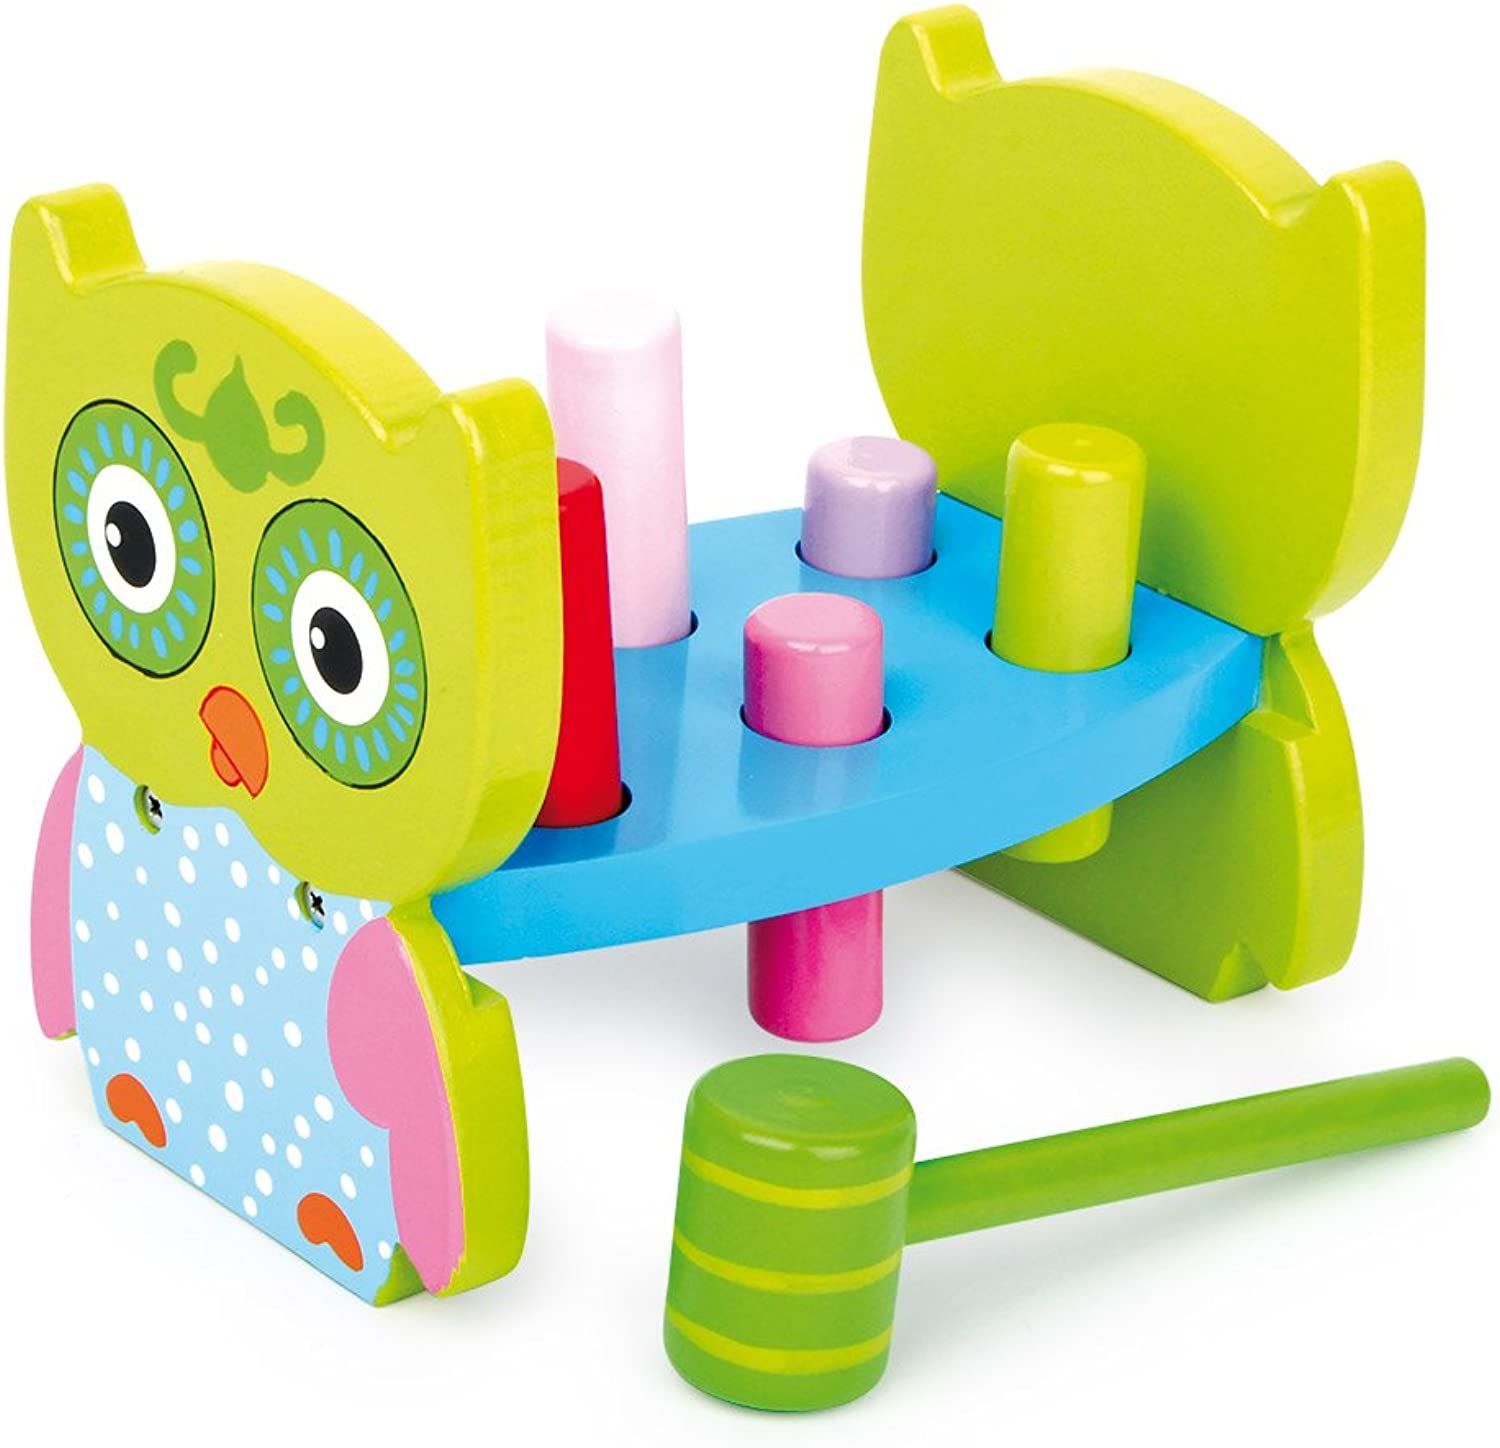 Legler Hammer Bench Owl Preschool Learning Toy